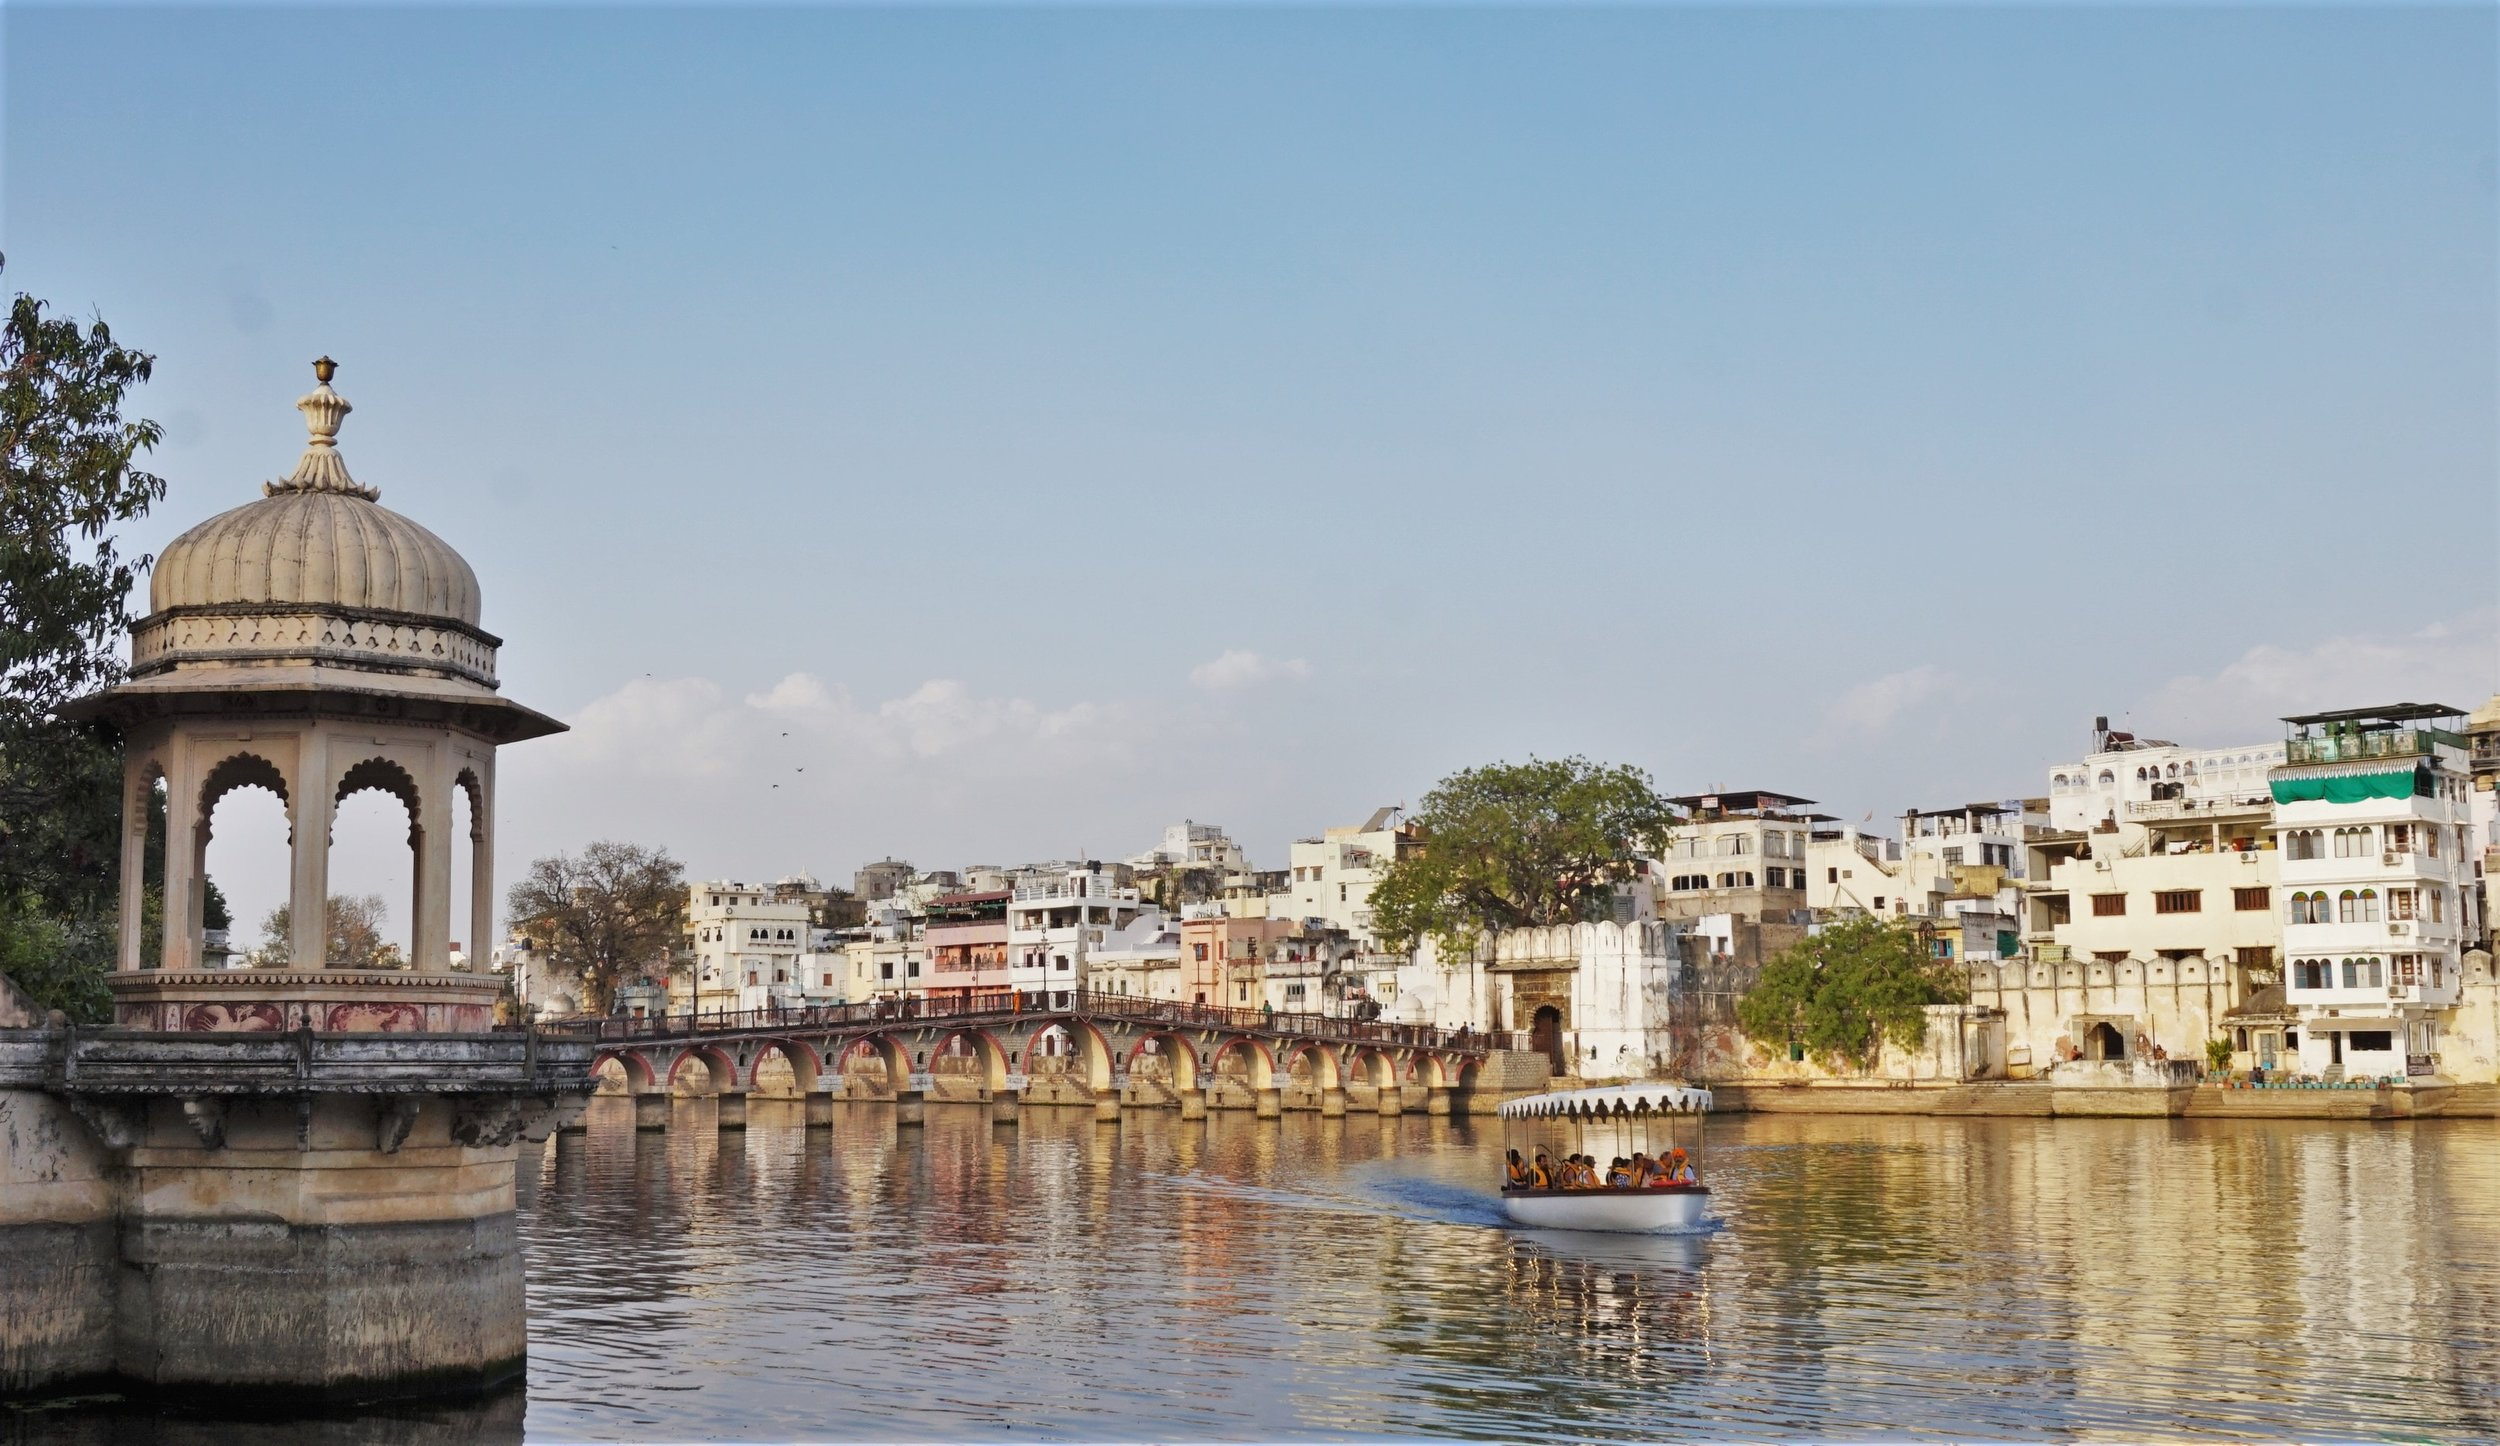 Take a trip with the boat on the lake at sunset is one of the best things to do in Udaipur. The view from the other side of the lake is one of the best places to visit in Udaipur.